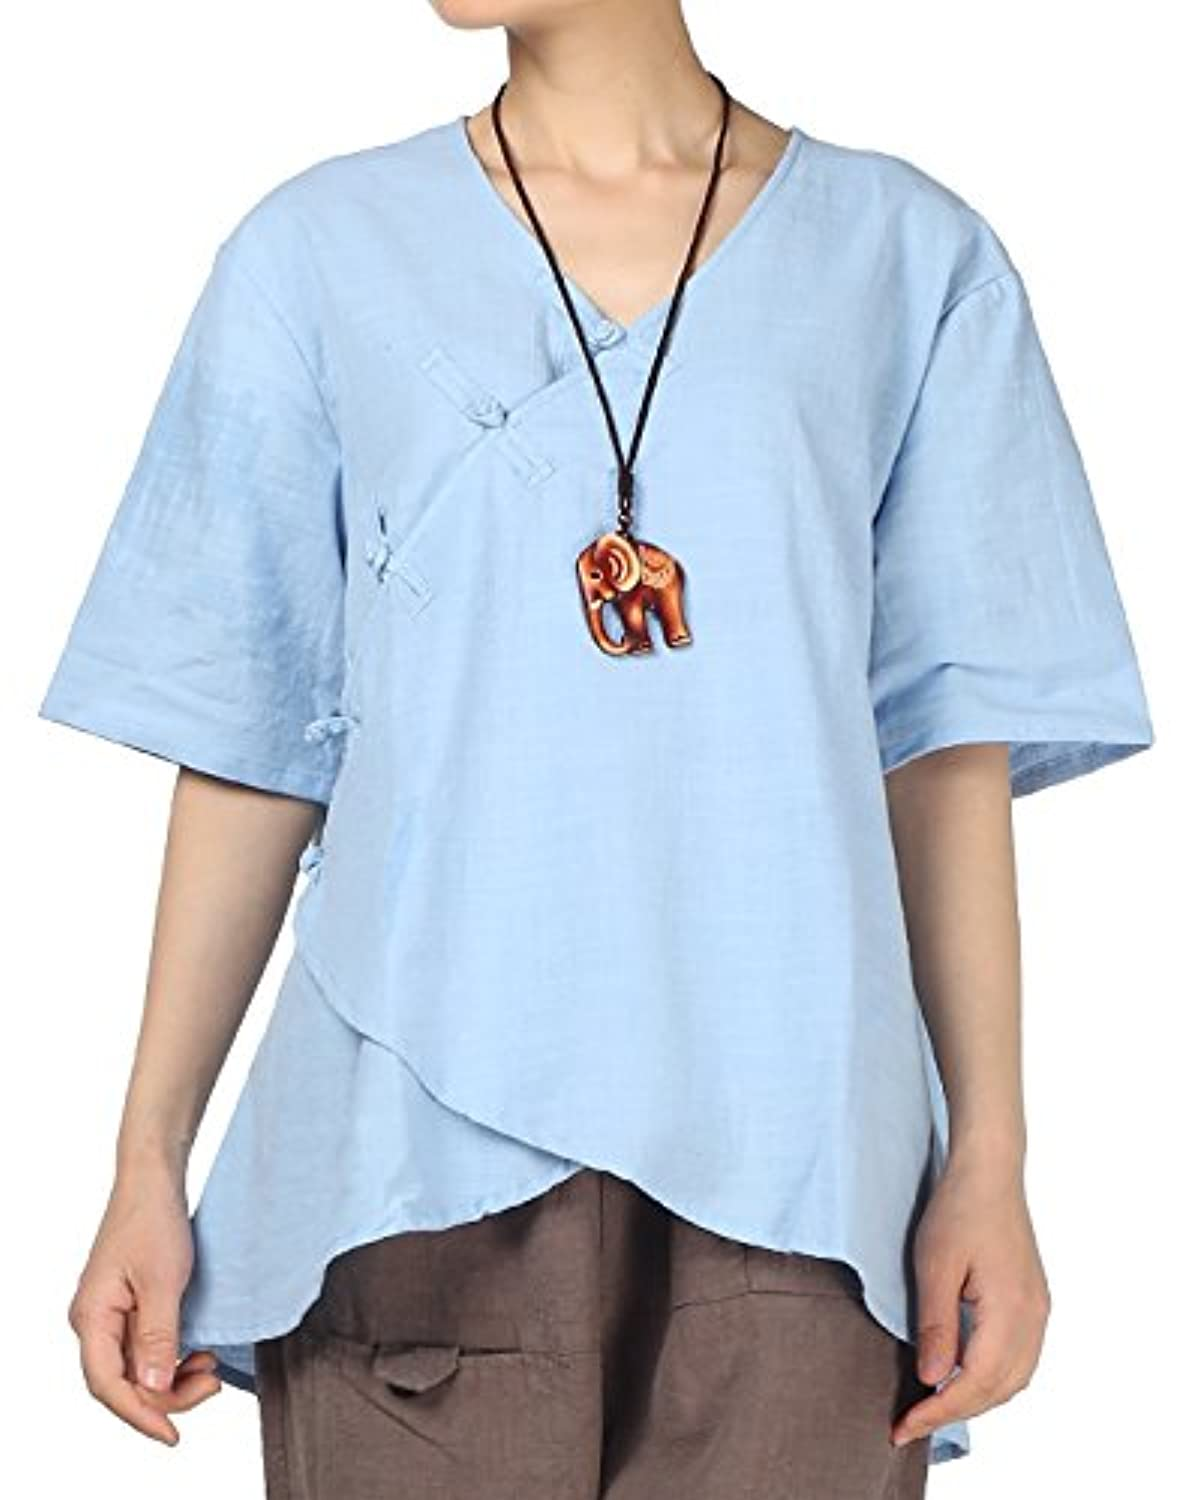 Women's Linen Retro Chinese Frog Button Tops Blouse